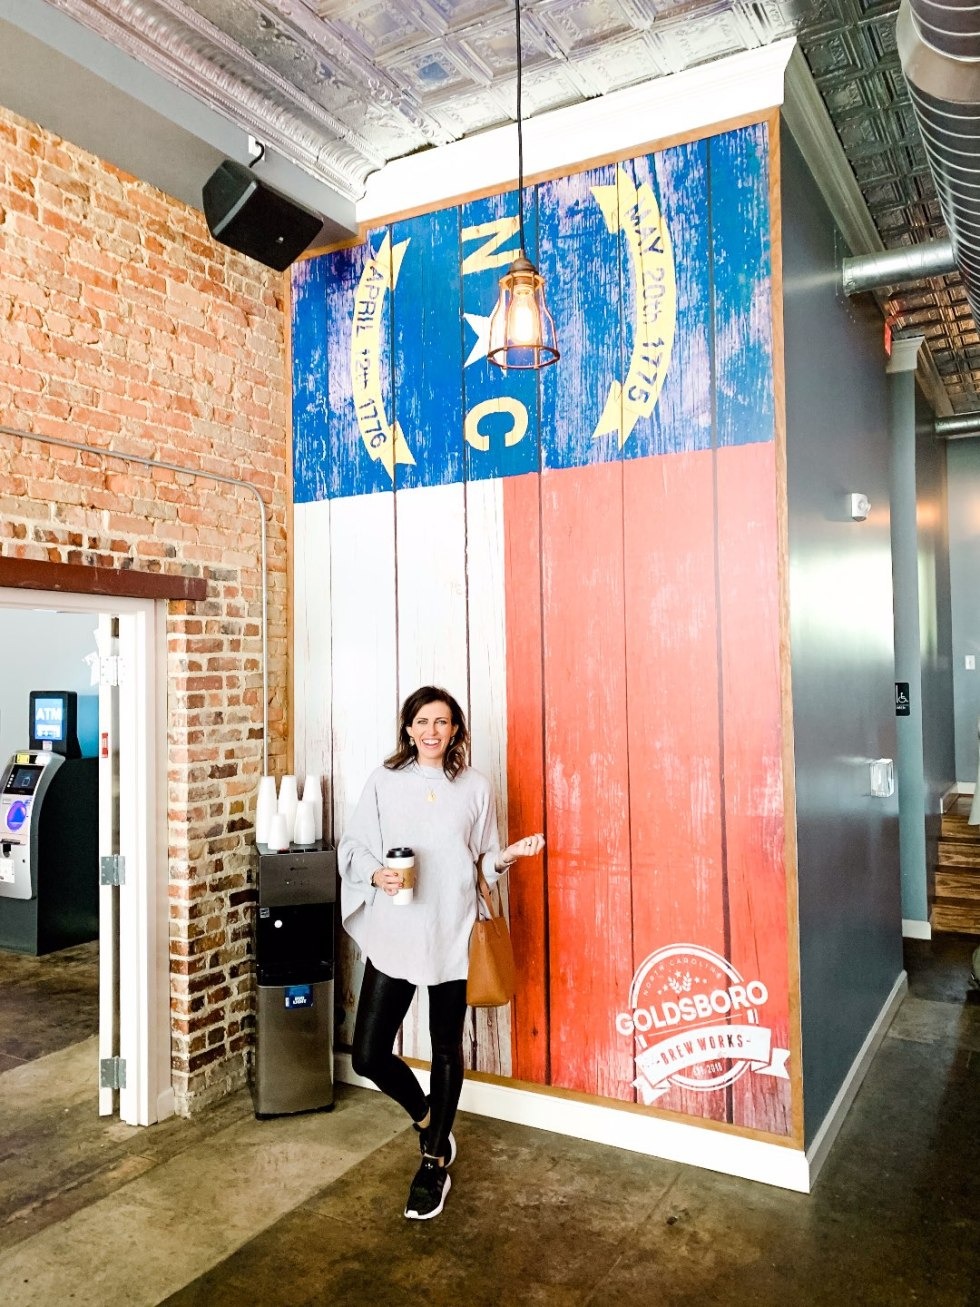 Eastern North Carolina Travel Guide: Top 10 Things to Do in Goldsboro NC by popular North Carolina blog, I'm Fixin' To: image of a woman wearing Spanx faux leather leggings at Goldsboro brew works.